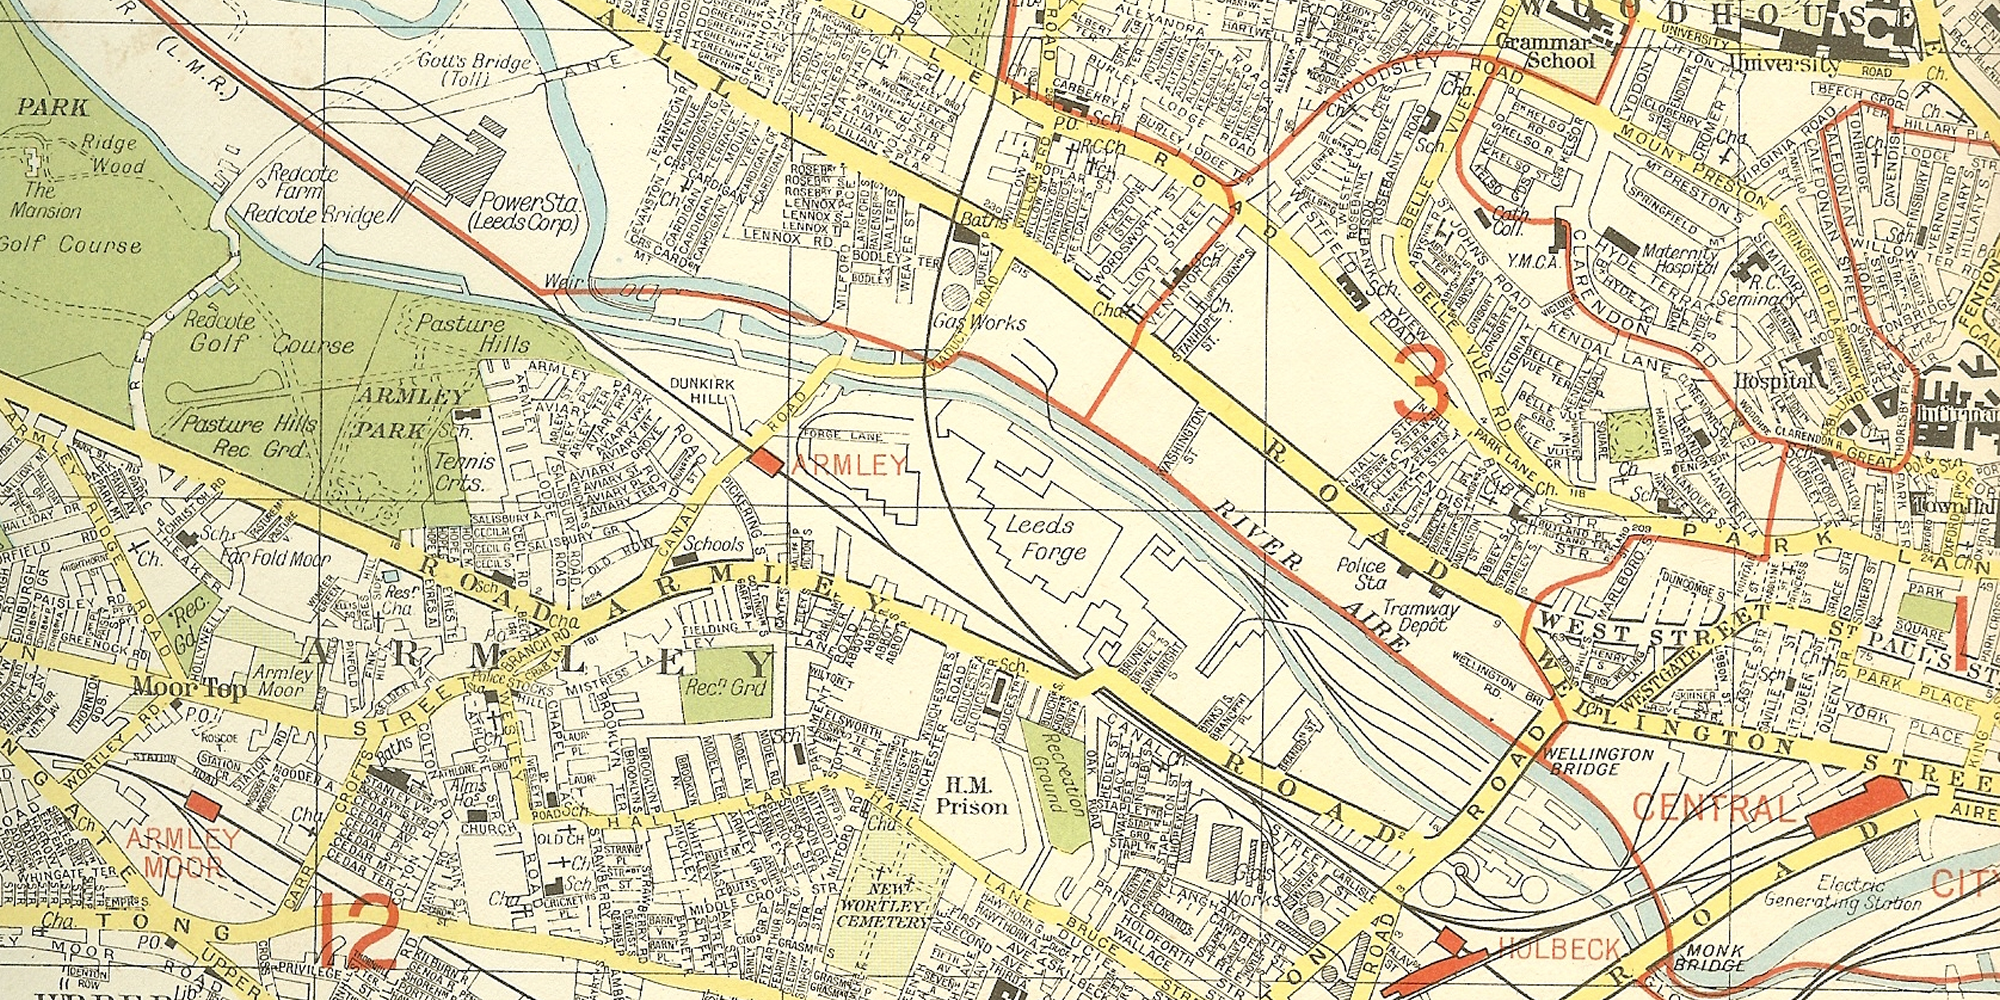 Photo: Part of a map of the western edge of Leeds city centre.